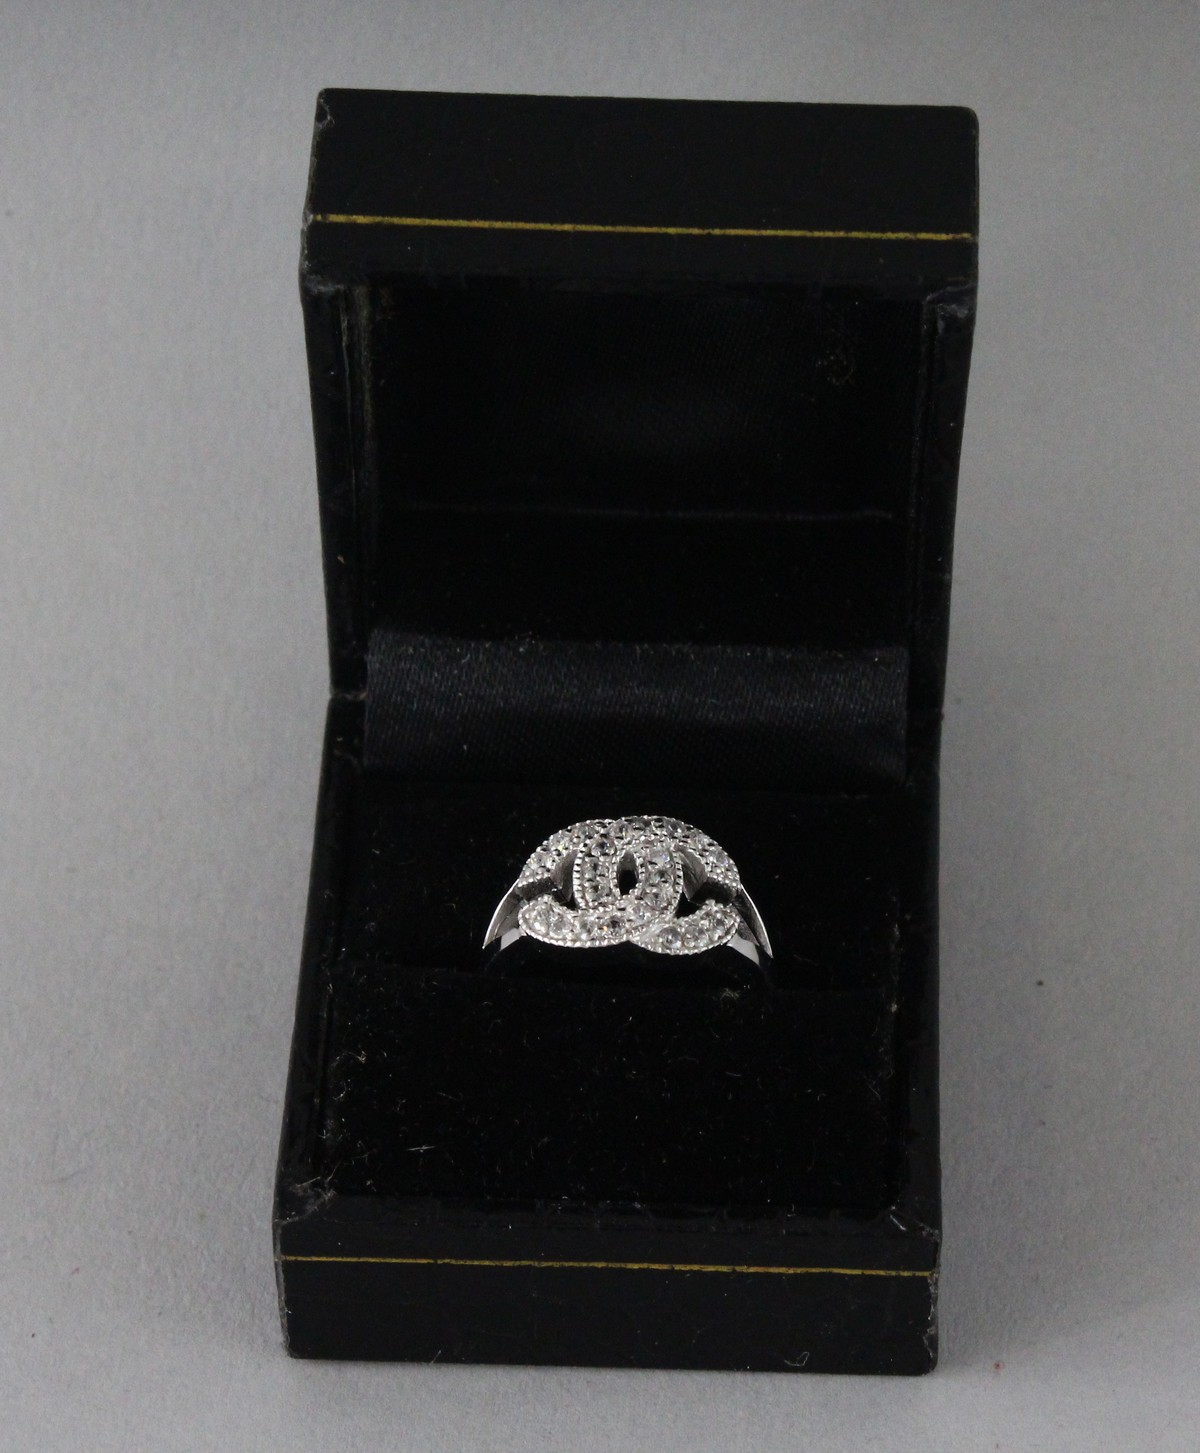 A CHANEL DESIGN SILVER AND CZ DOUBLE C RING. - Image 4 of 4